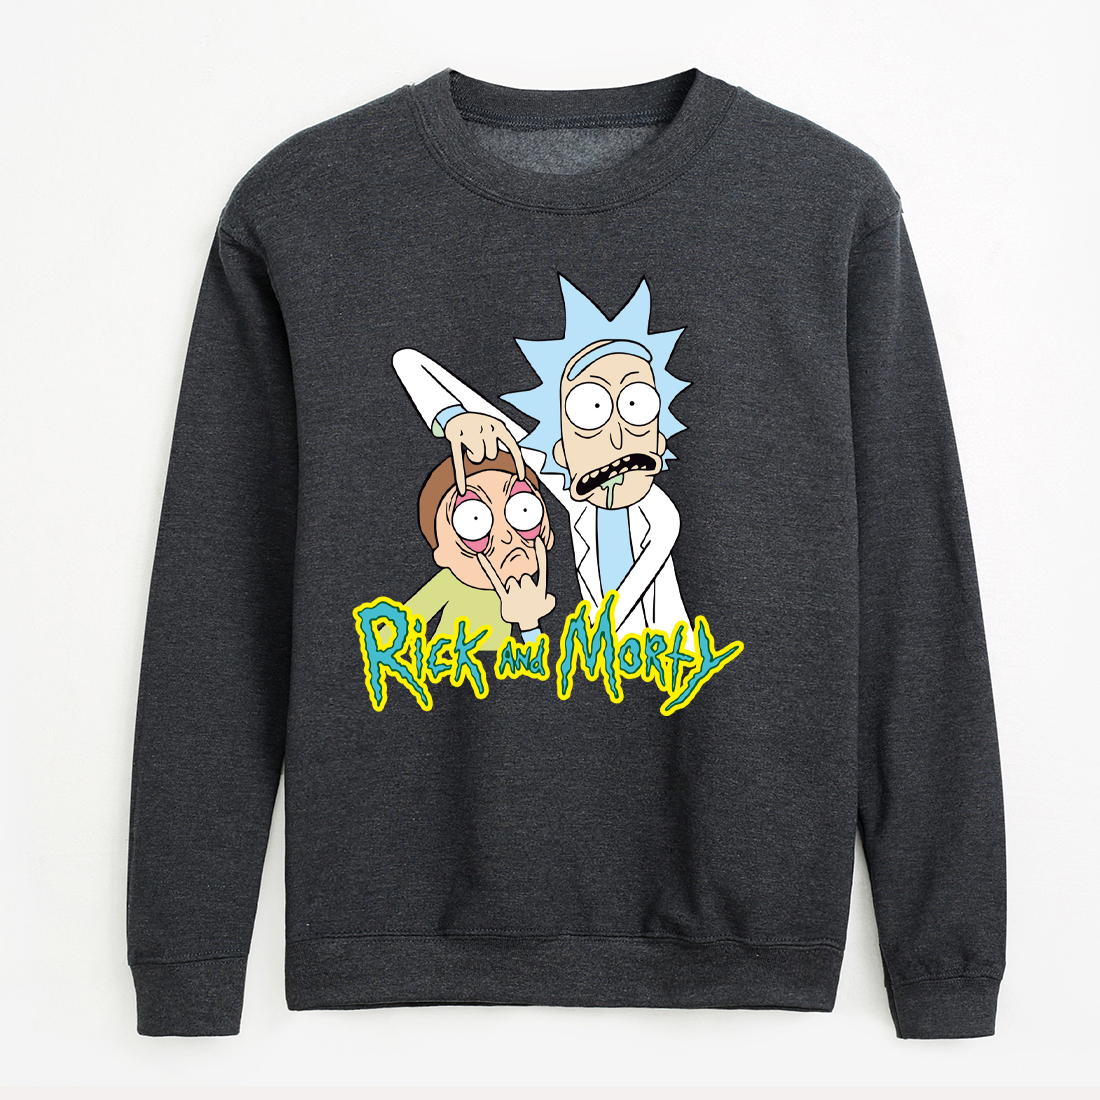 Streetwear Hip-hop Hoodies For Men White Gray Long Sleeve Sweatshirts Rick And Morty Fashion Brand Tracksuits 2020 New Pullovers